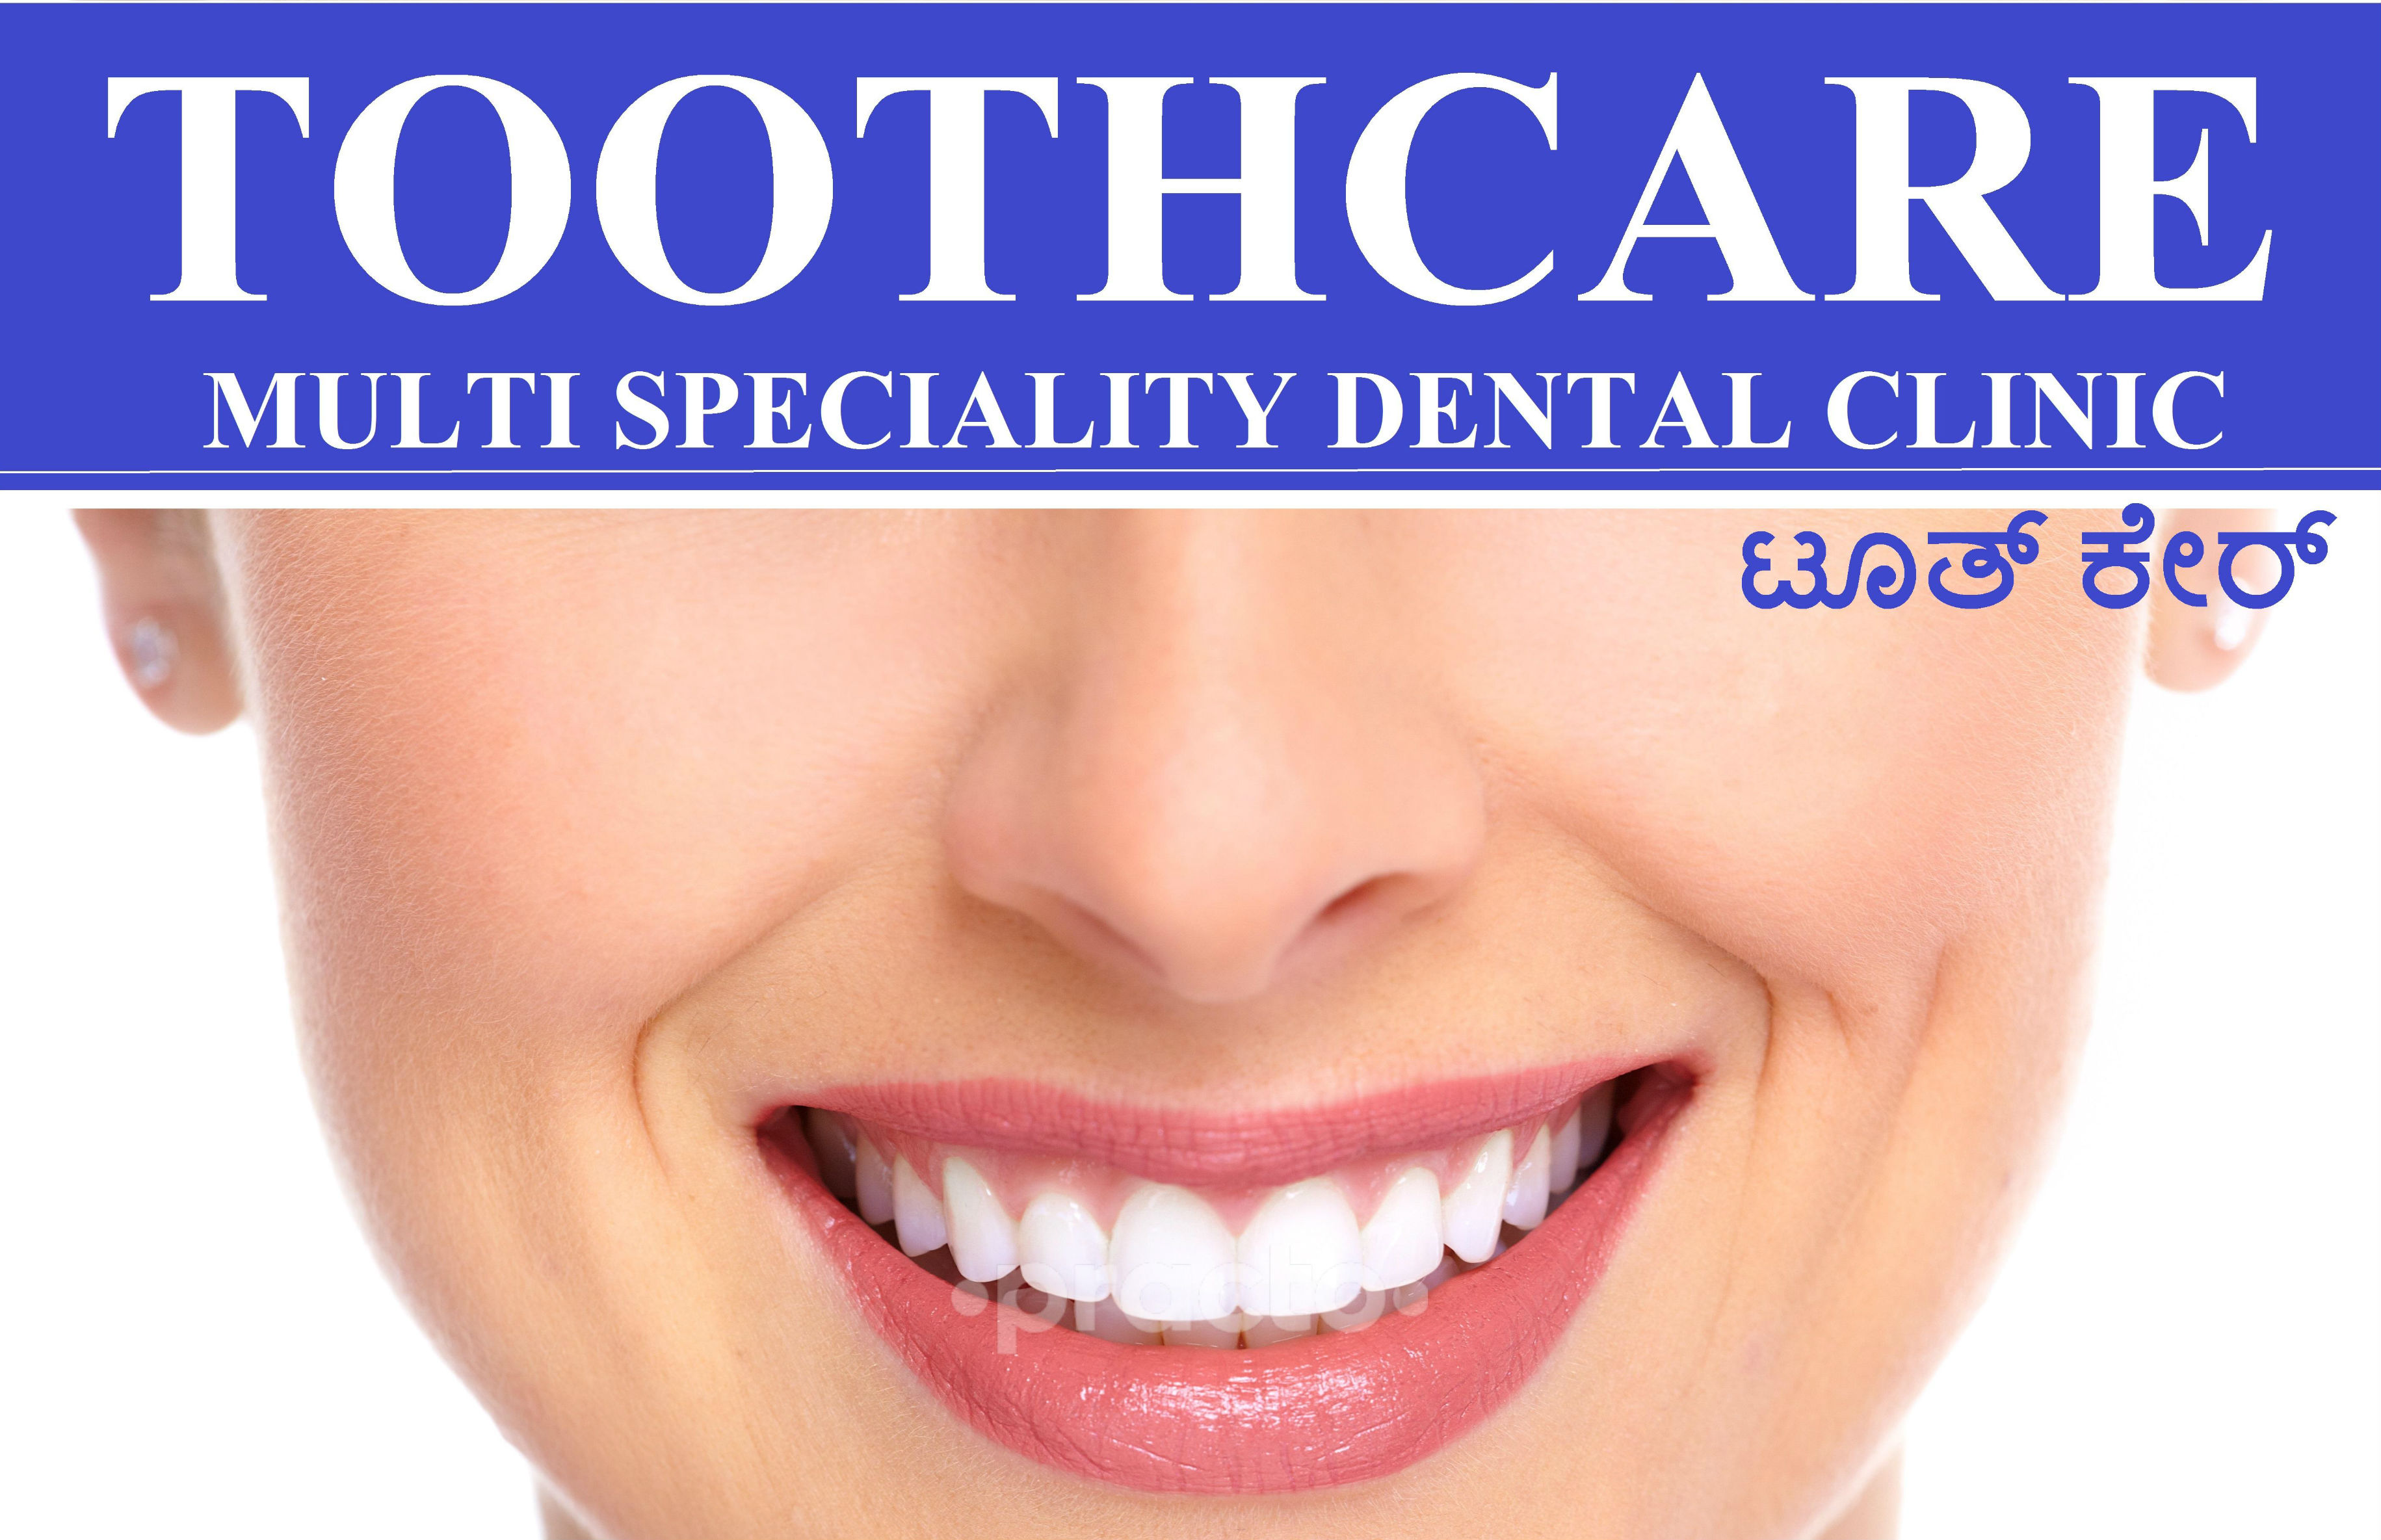 Tooth Care Dental Clinic